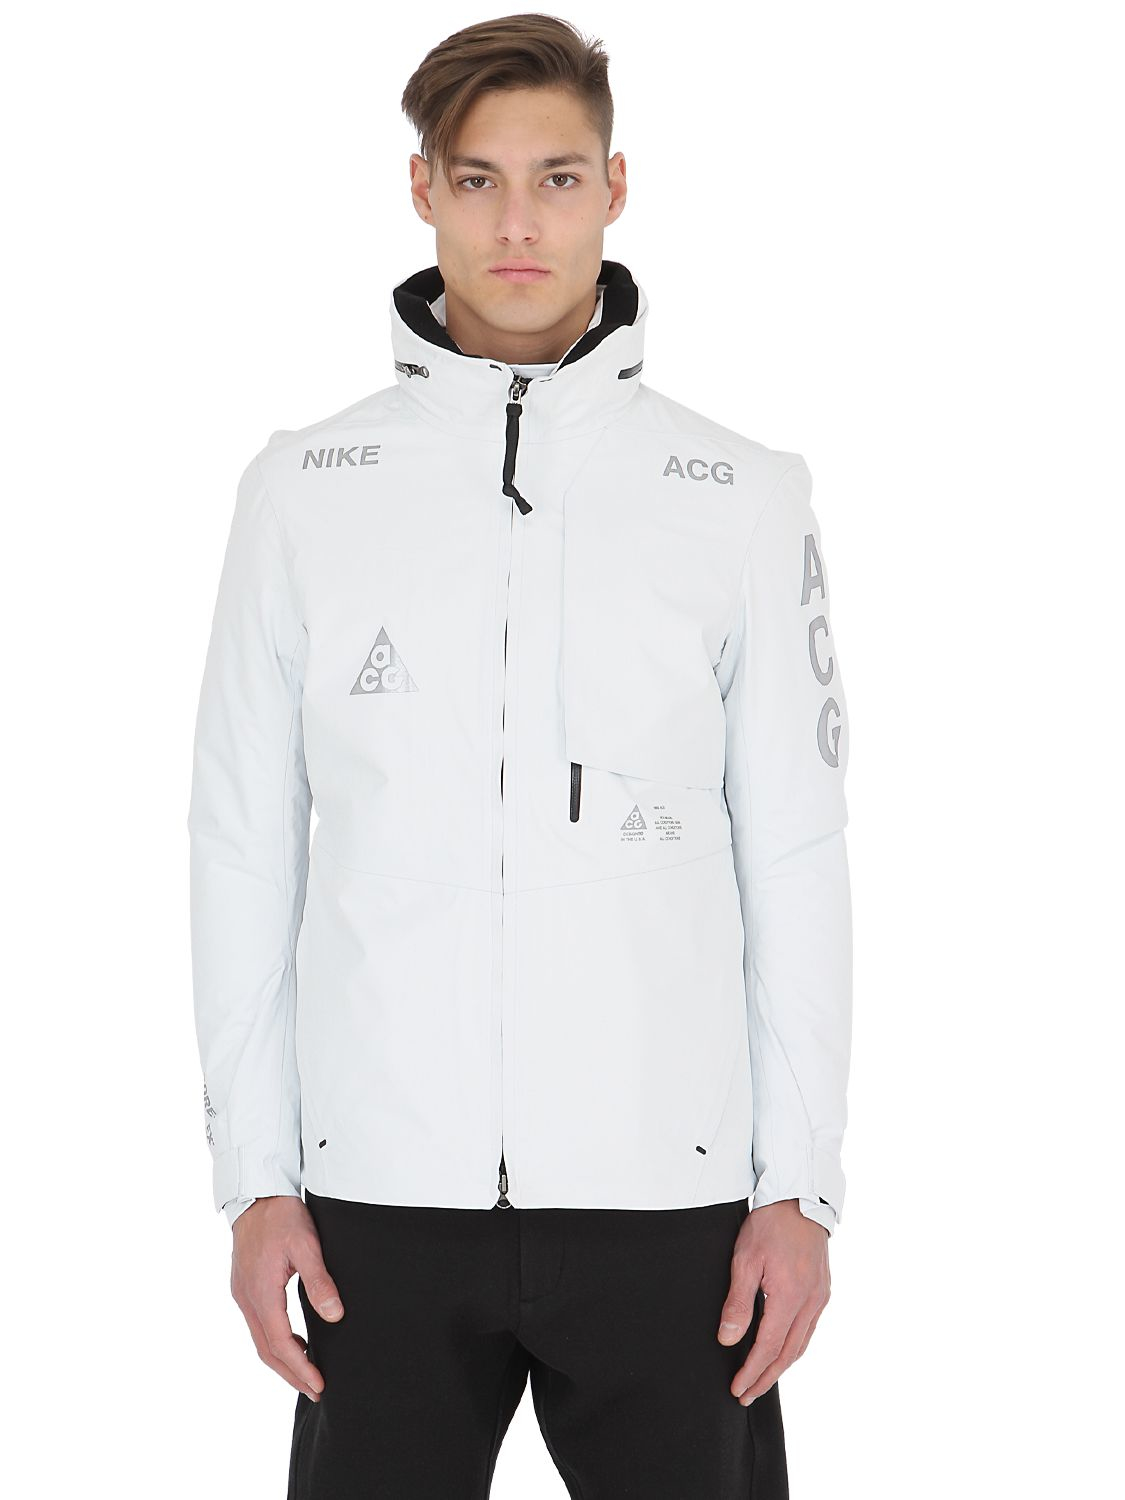 1d12a46b173f Lyst - Nike Acg Gore-tex 2 In 1 System Shell Jacket in White for Men